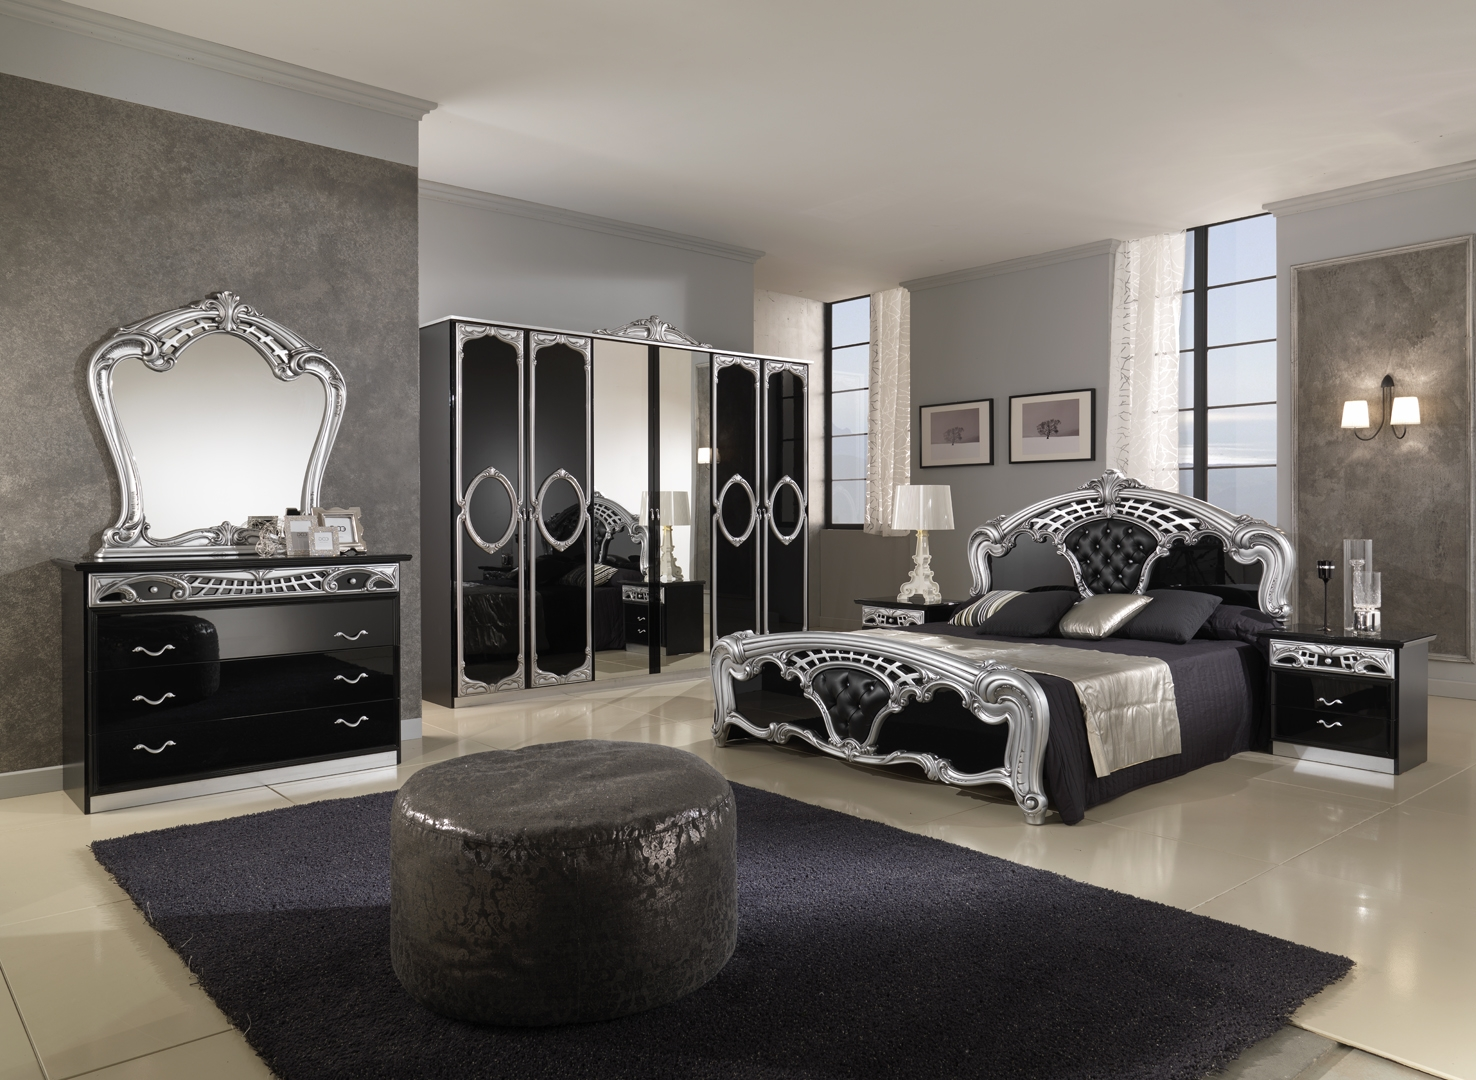 Mirrored Bedroom Furniture Ideas Intended For Mirrored Glass Bedroom Furniture Regarding Motivate - JABLEH.COM